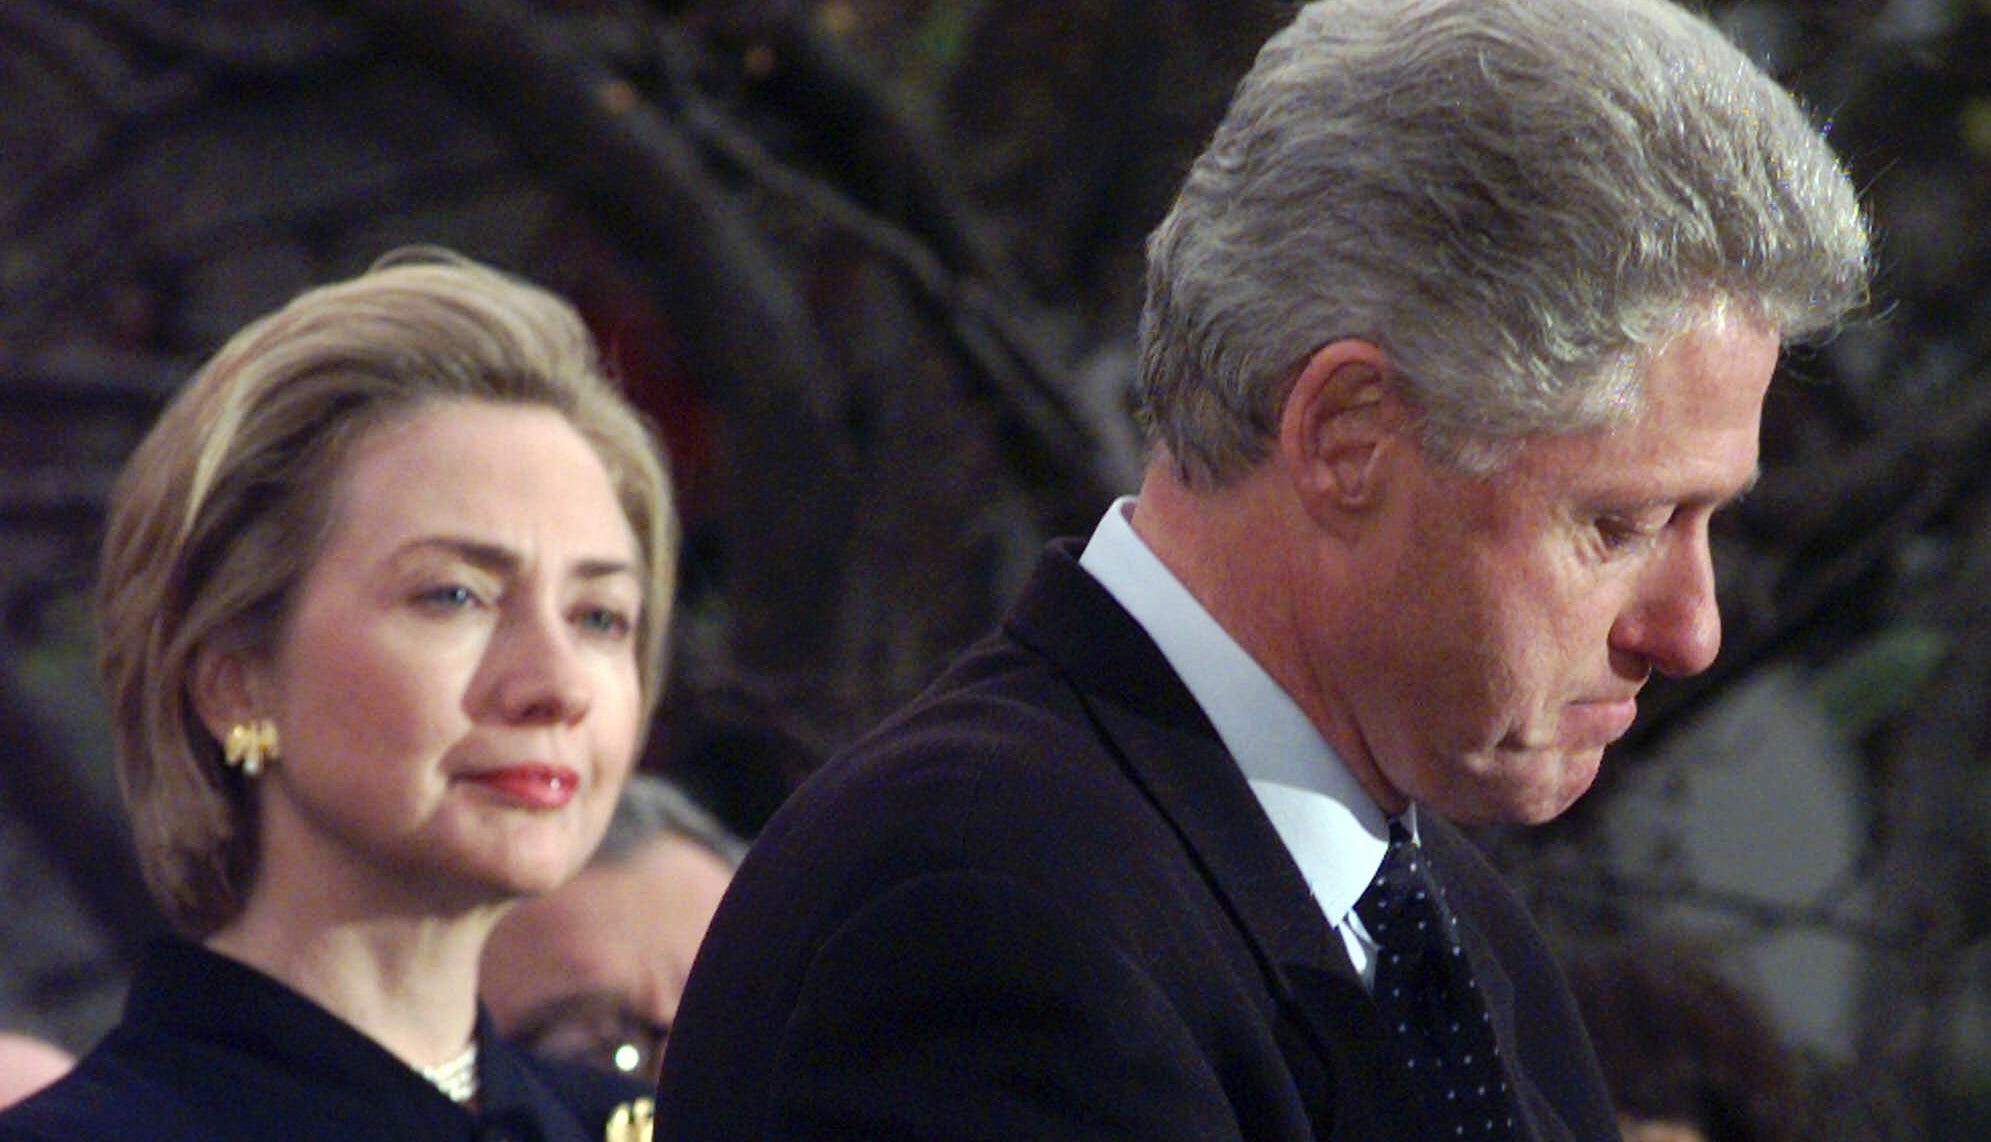 **FOR USE WITH AP LIFESTYLES**    ** FILE ** First lady Hillary Rodham Clinton watches President Clinton pause as he thanks those Democratic members of the House of Representatives who voted against impeachment in this Dec. 19, 1998 file photo. Many women weigh in on why political spouses stand by their men. (AP Photo/Susan Walsh, File) ORG XMIT: NYLS511